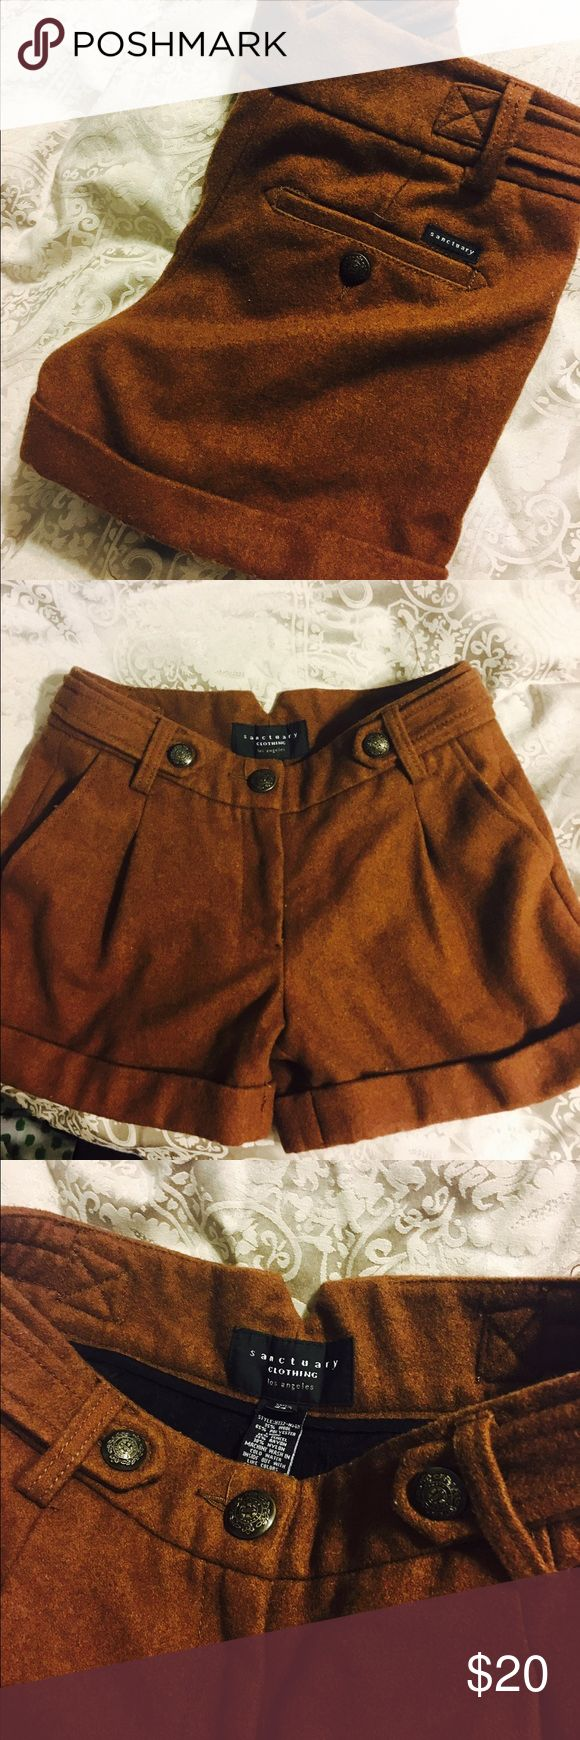 Winter style shorts Sz 24 adorable brown shorts, perfect with leggings and a cut off sweatshirt Sanctuary Shorts